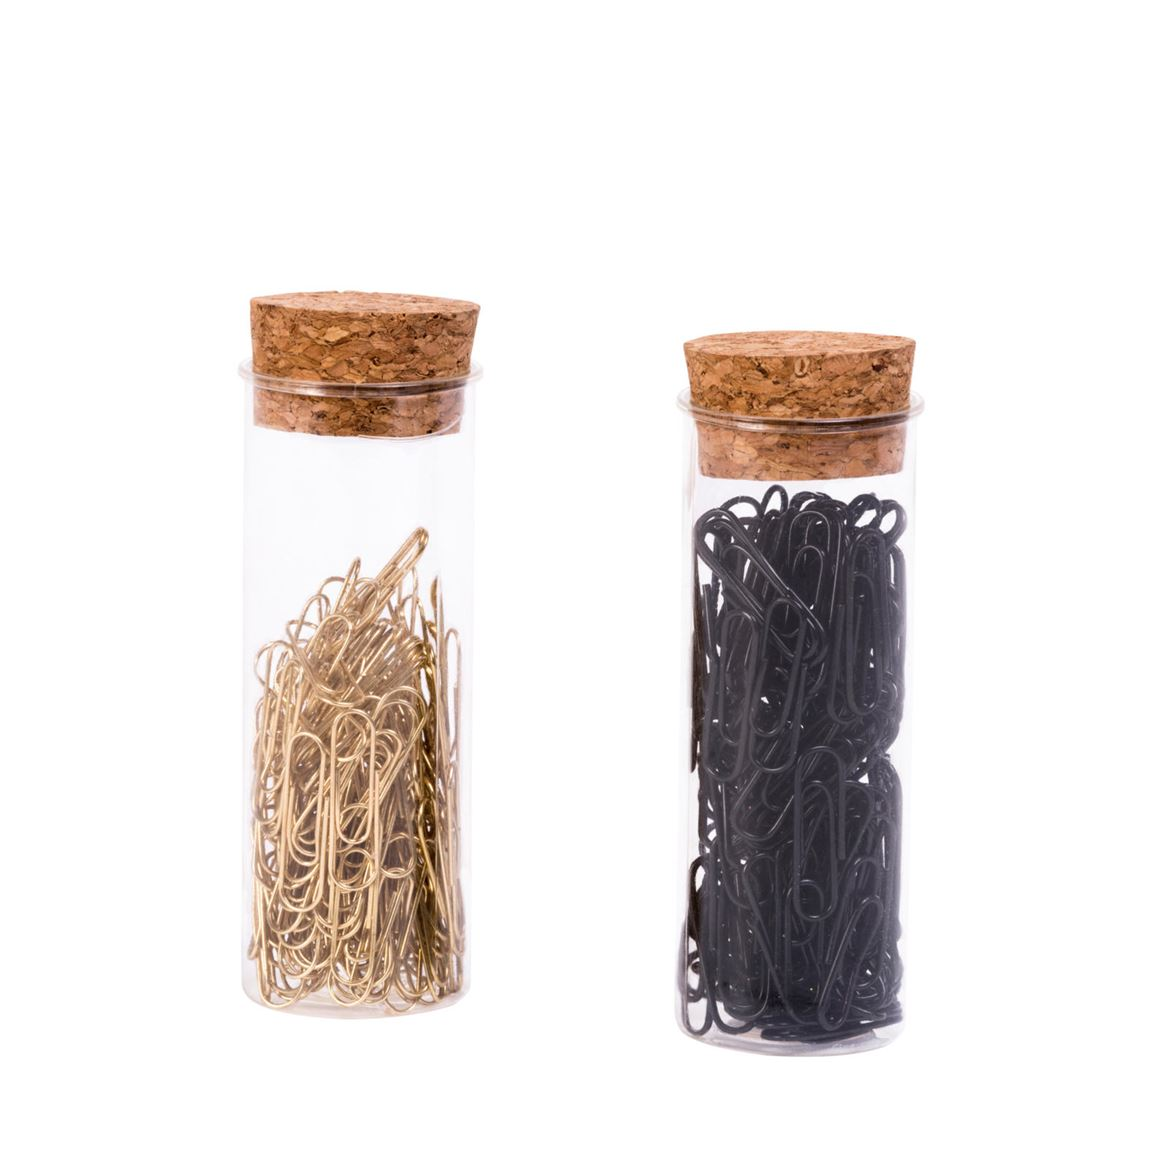 JAR Trombones set de 120 2 couleurs noir, doré Long. 2,8 cm_jar-trombones-set-de-120-2-couleurs-noir,-doré-long--2,8-cm